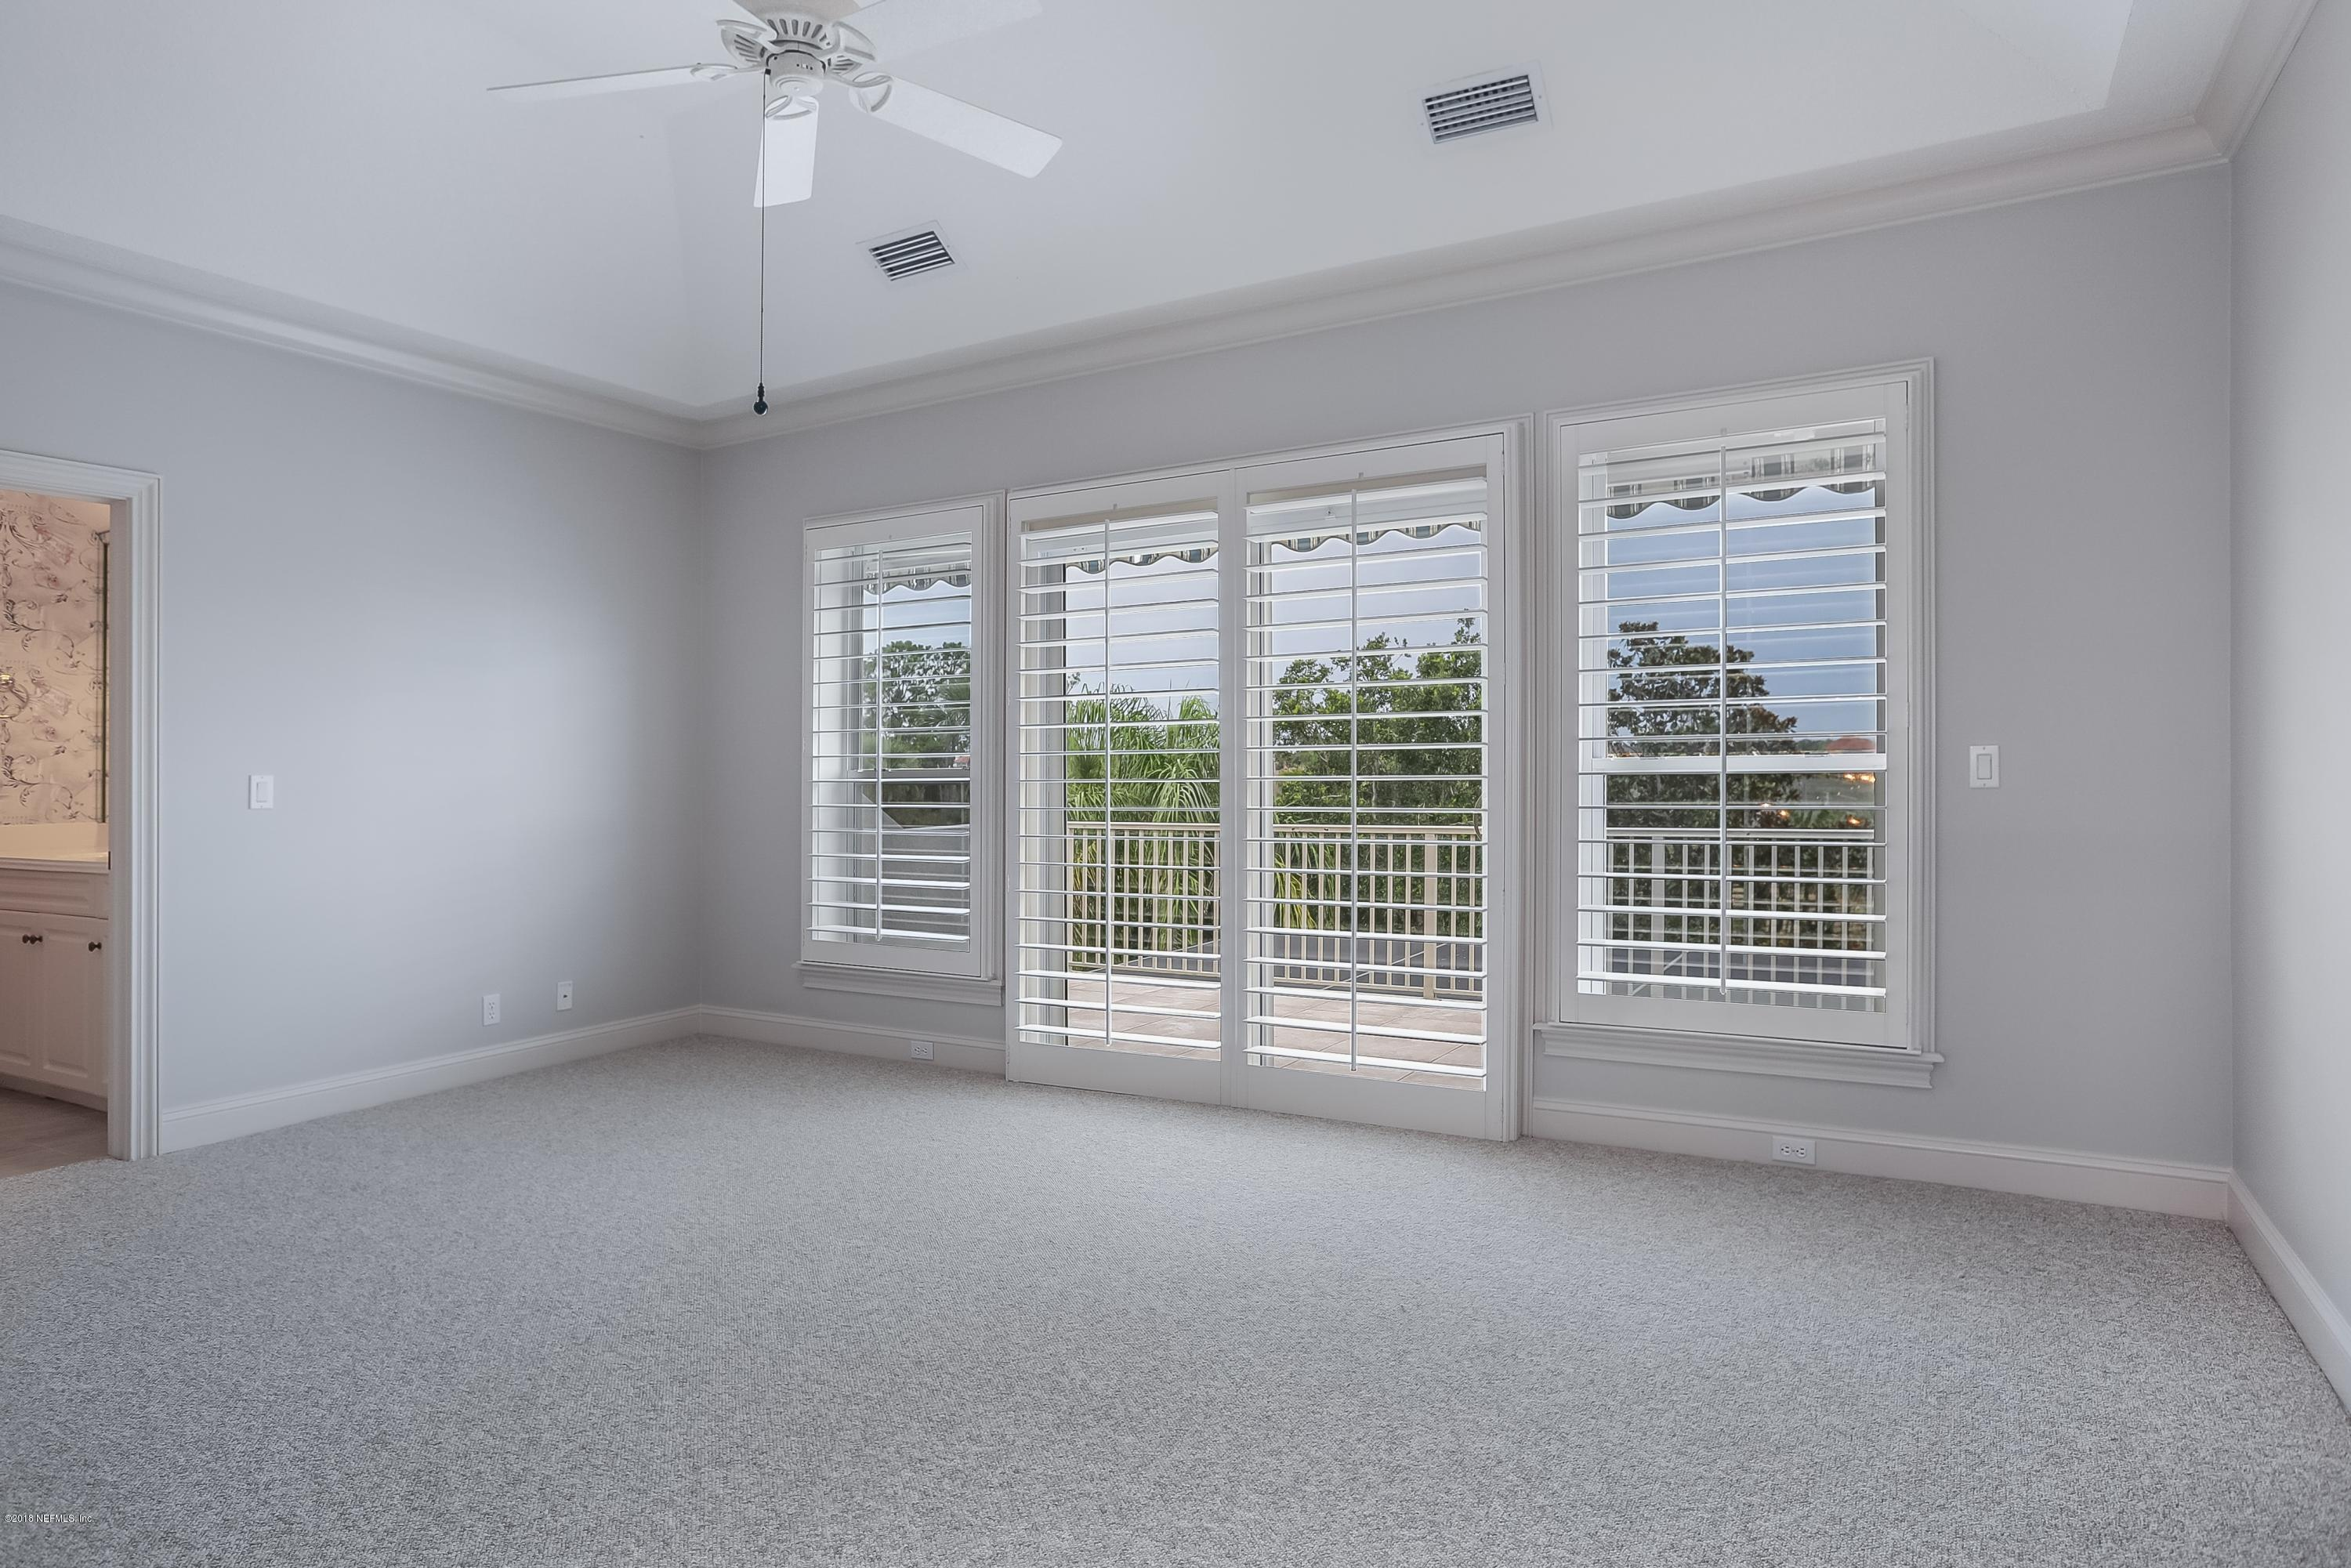 4432 ROYAL TERN, JACKSONVILLE BEACH, FLORIDA 32250, 5 Bedrooms Bedrooms, ,5 BathroomsBathrooms,Residential - single family,For sale,ROYAL TERN,944503